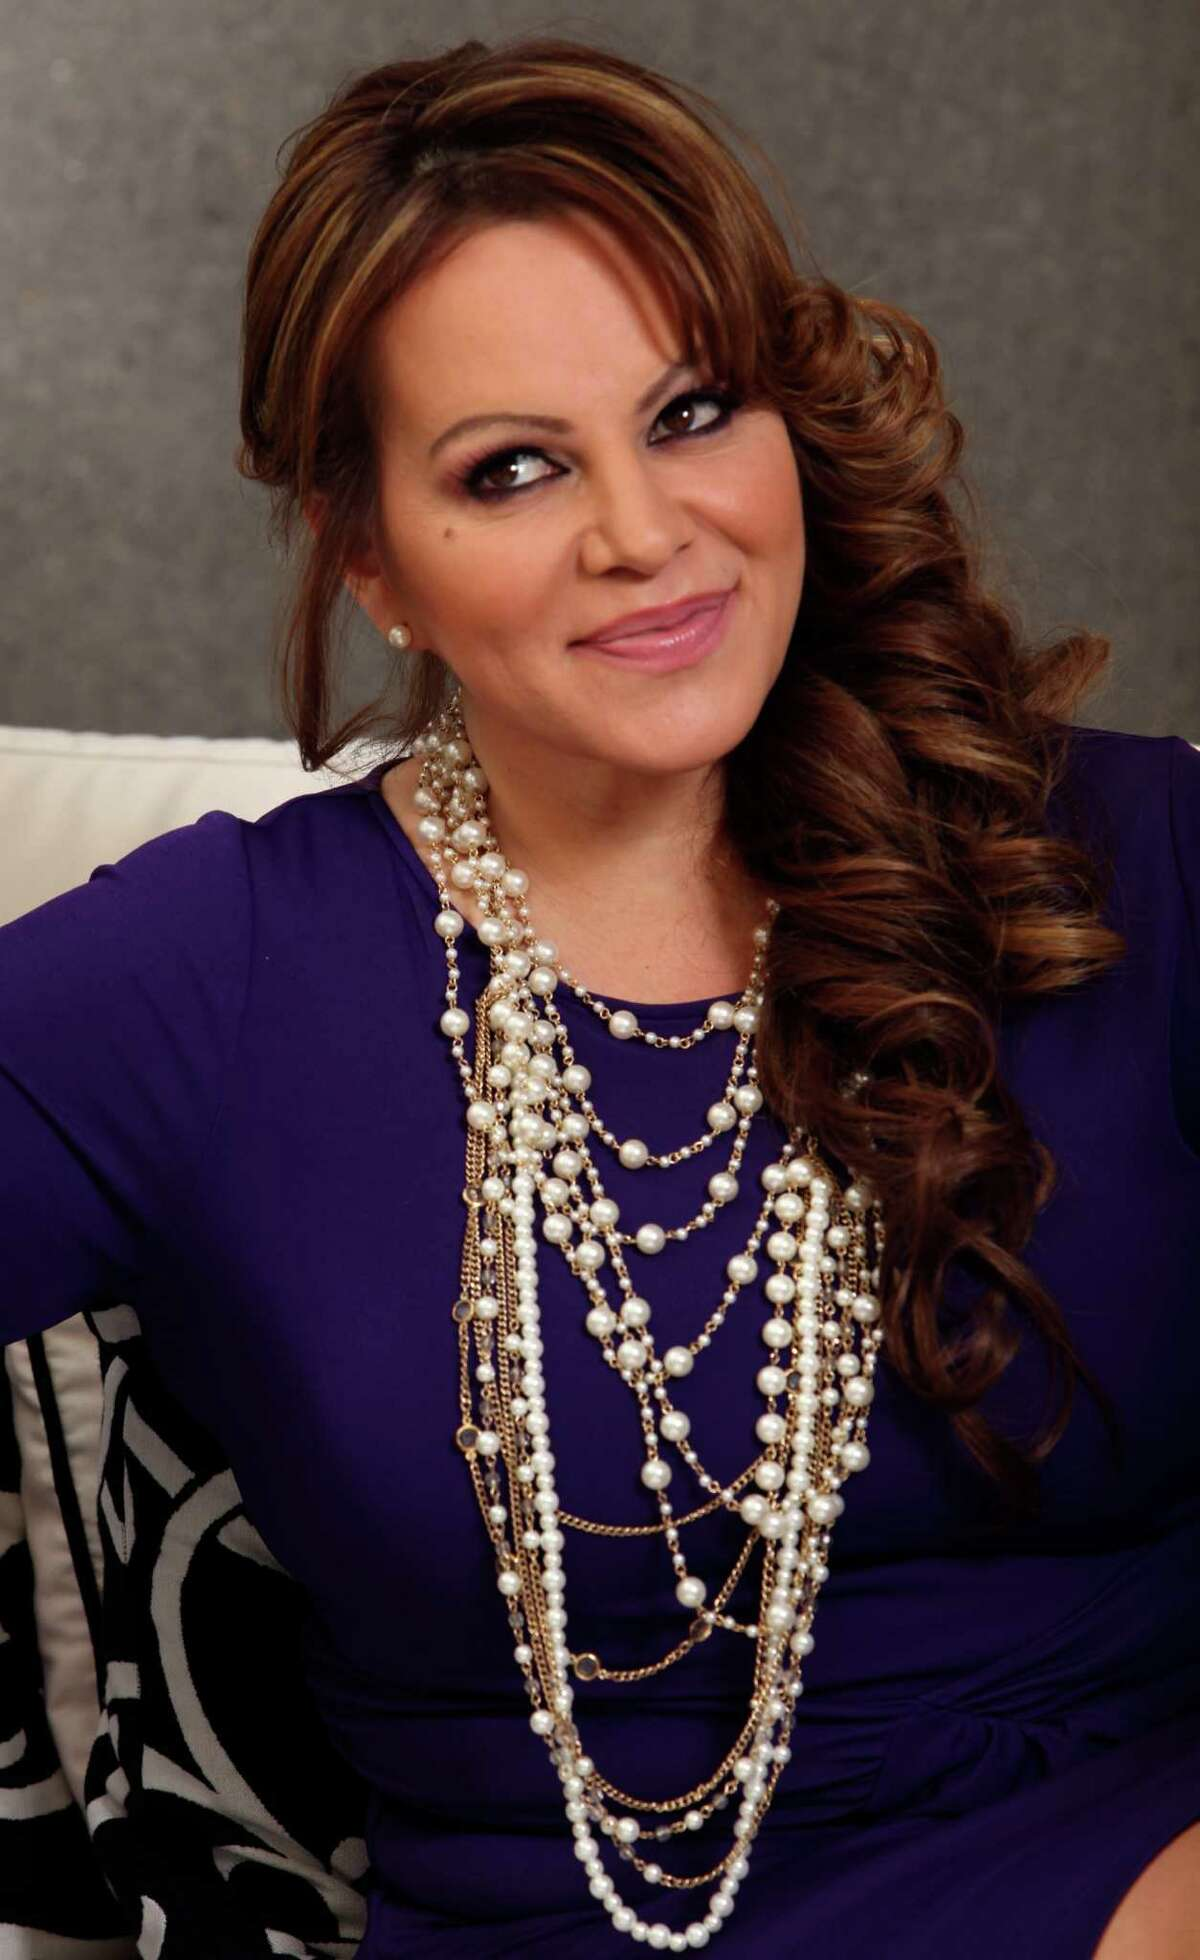 In this picture taken March 8, 2012, Mexican-American singer and reality TV star Jenni Rivera poses during an interview in Los Angeles. The wreckage of a small plane believed to be carrying Mexican-American music superstar Jenni Rivera was found in northern Mexico on Sunday, Dec. 9, 2012, and there are no apparent survivors, authorities said.